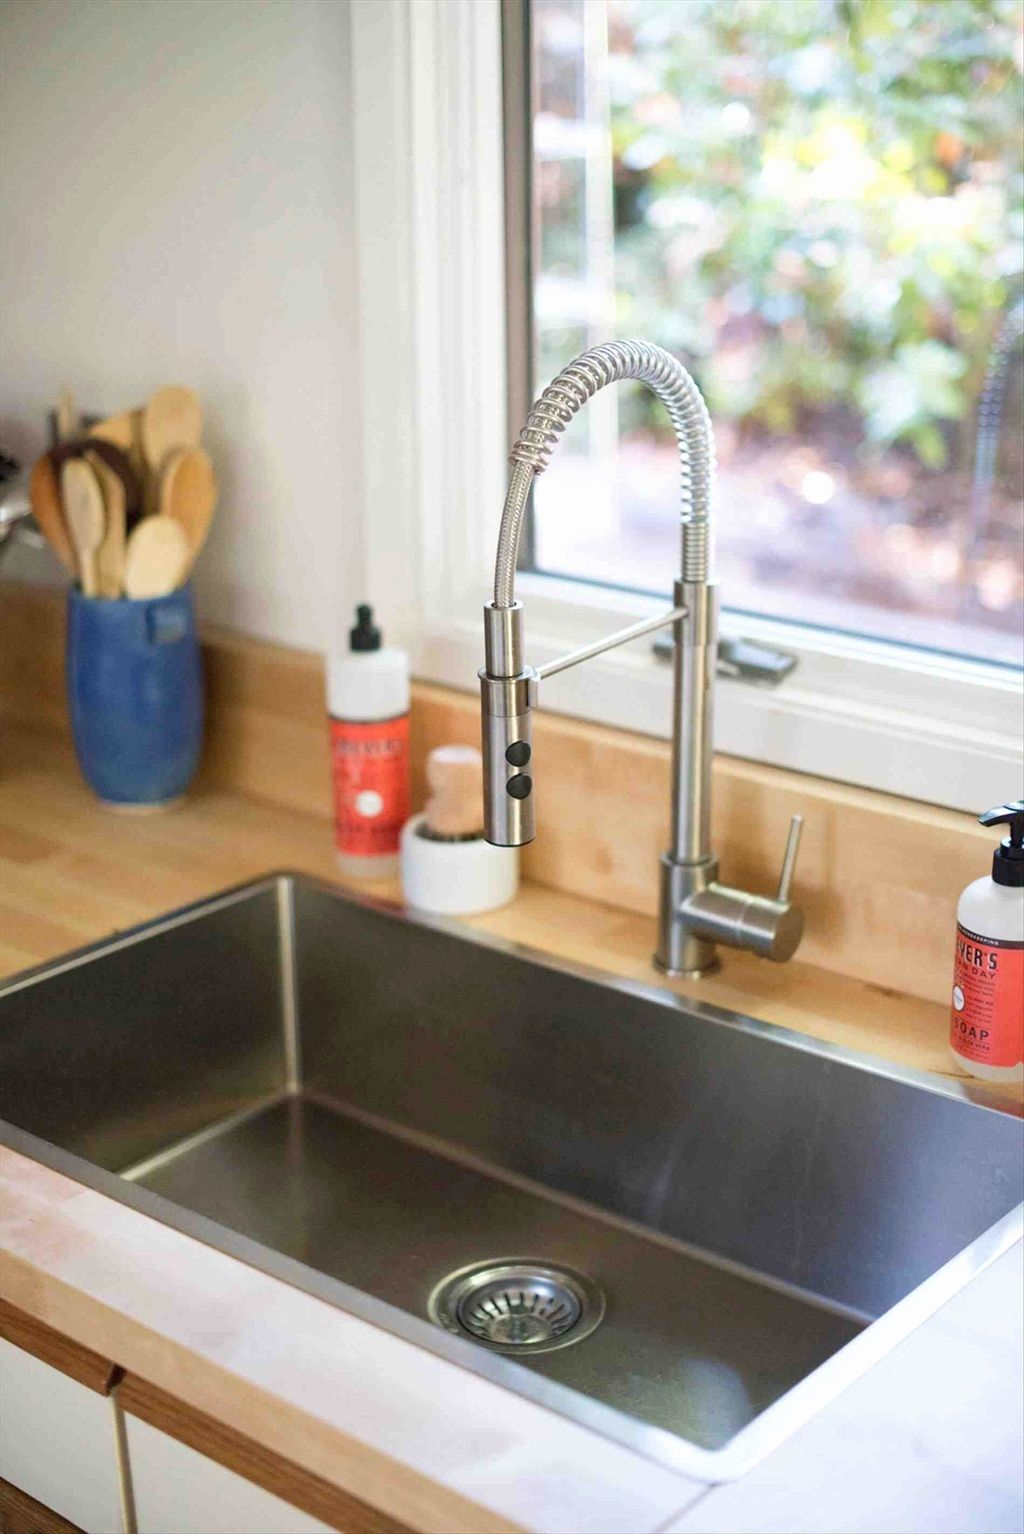 Kitchen Sinks For Today Homes – Styles And Trends of 2019 ...